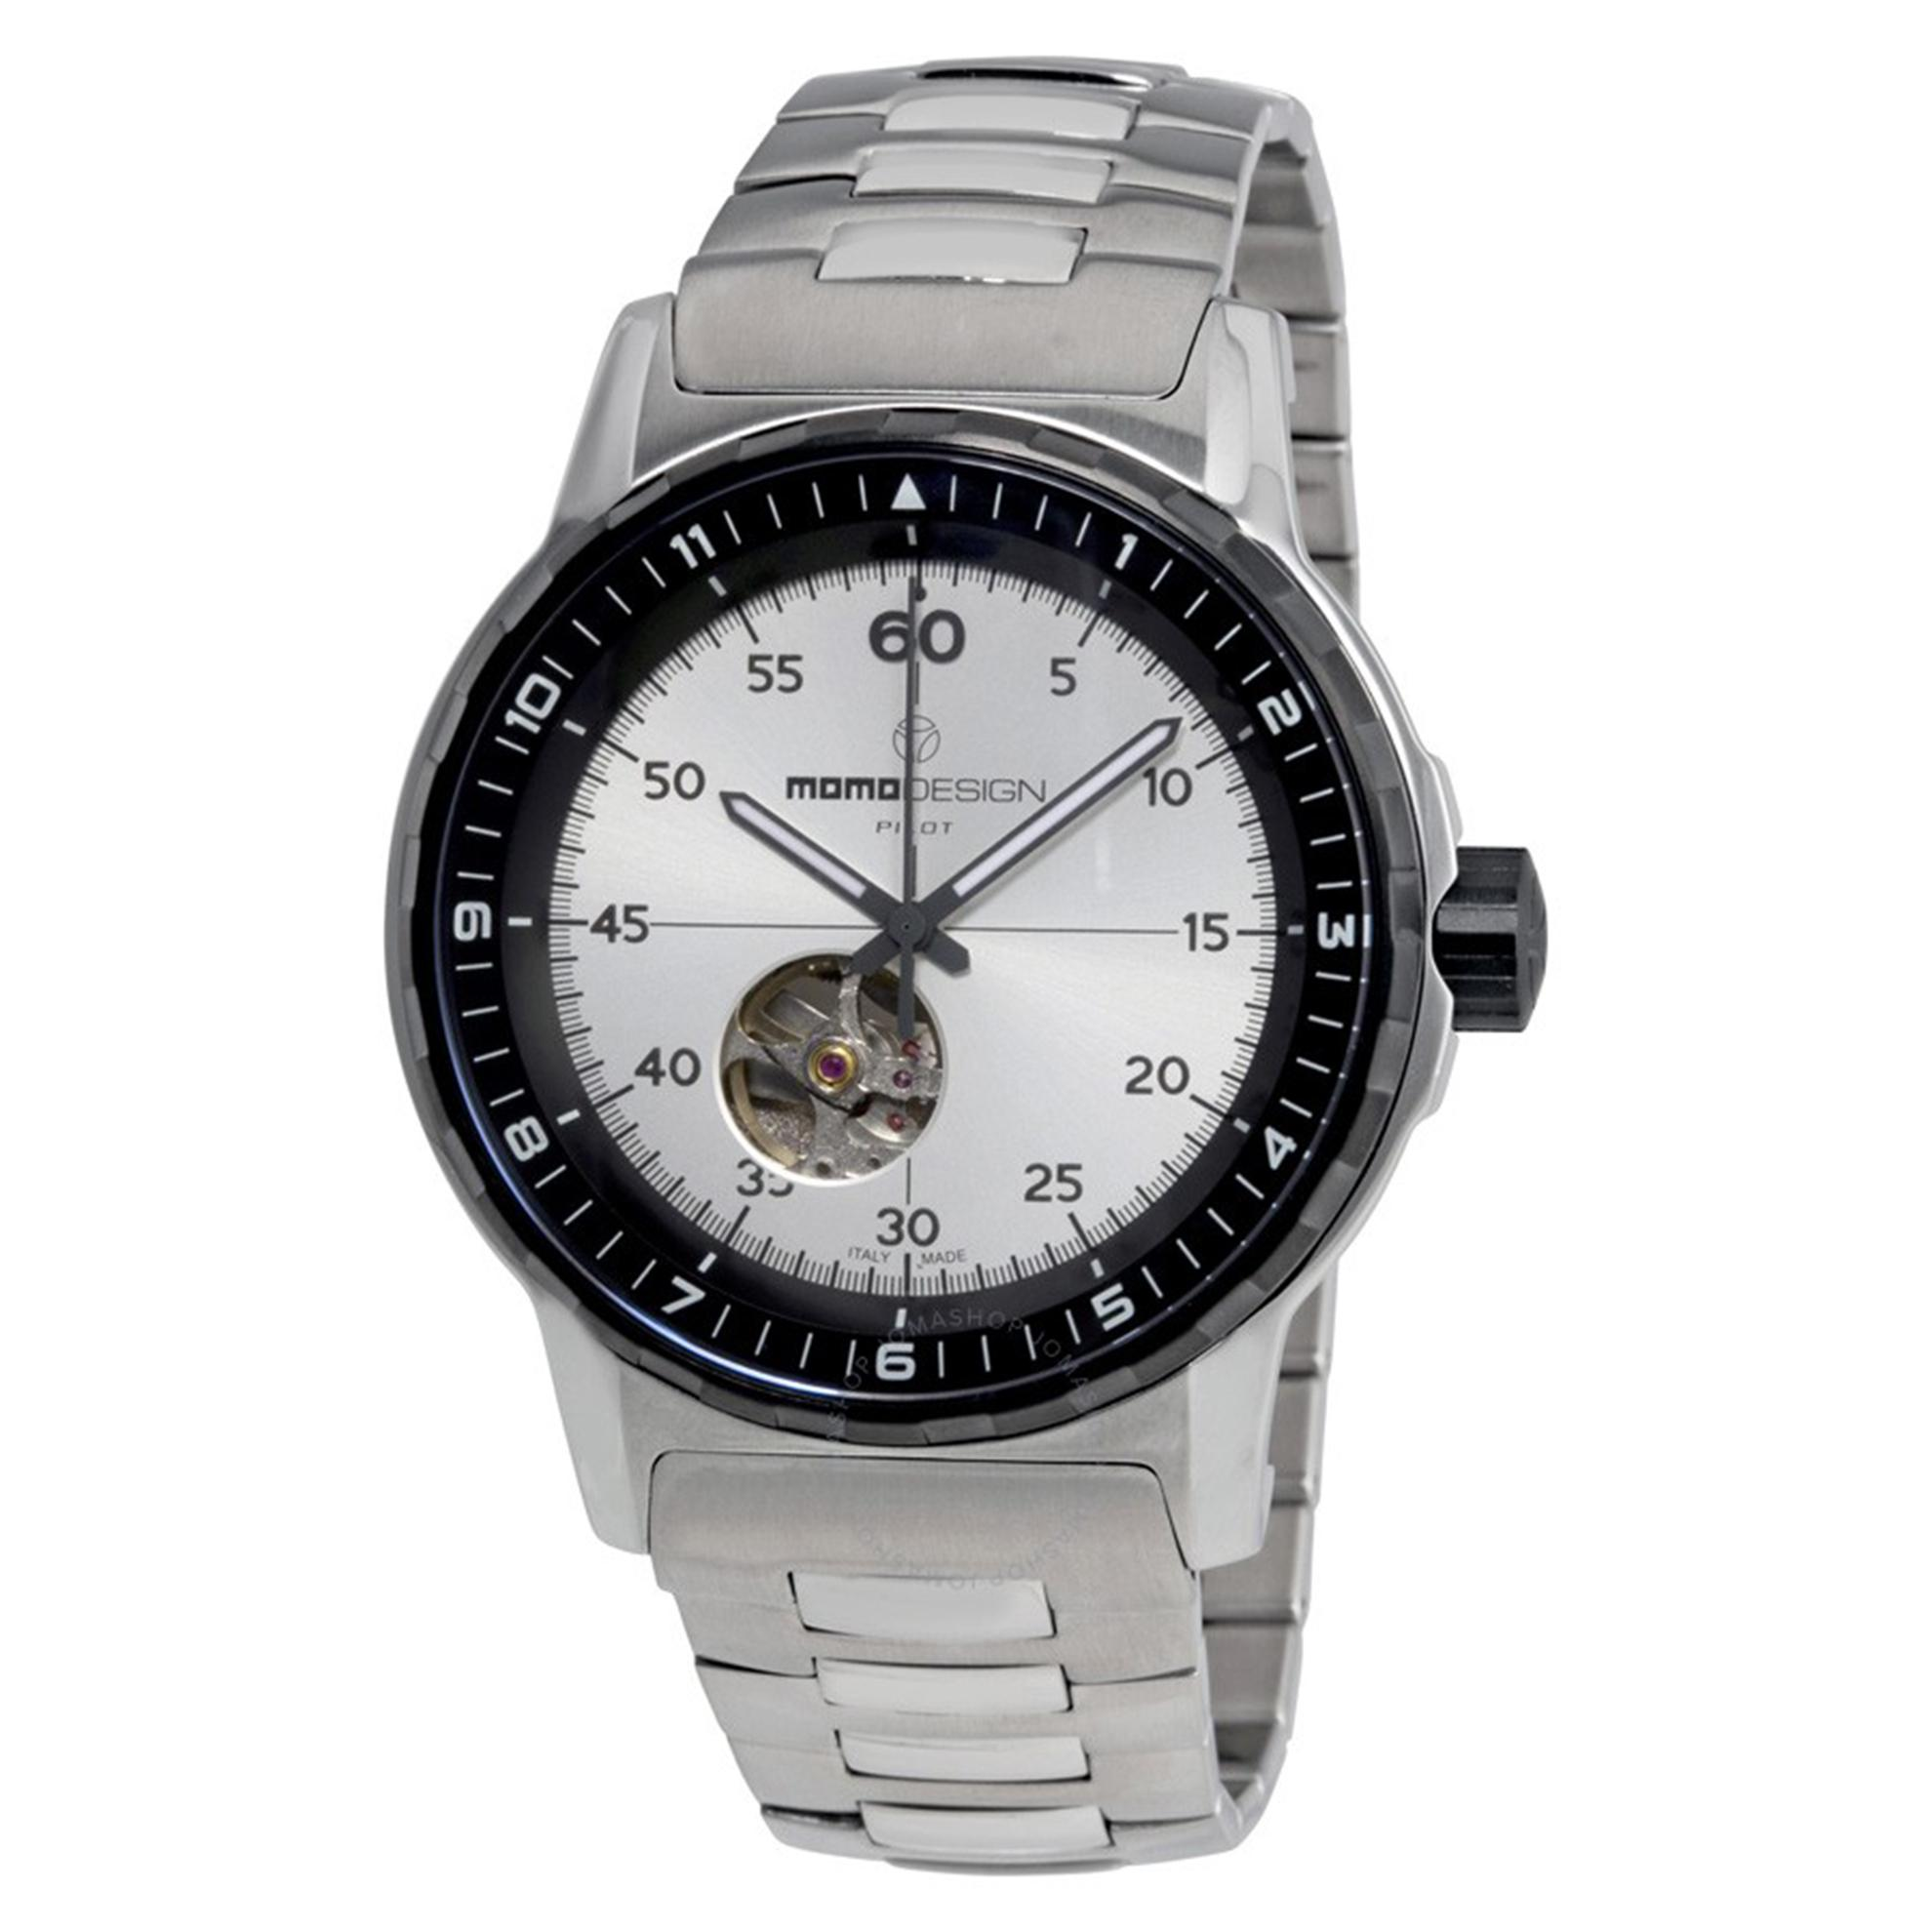 MOMO Design 3064SB-40 Momo Design Pilot Heritage Automatic Heartbeat Stainless Steel Silver